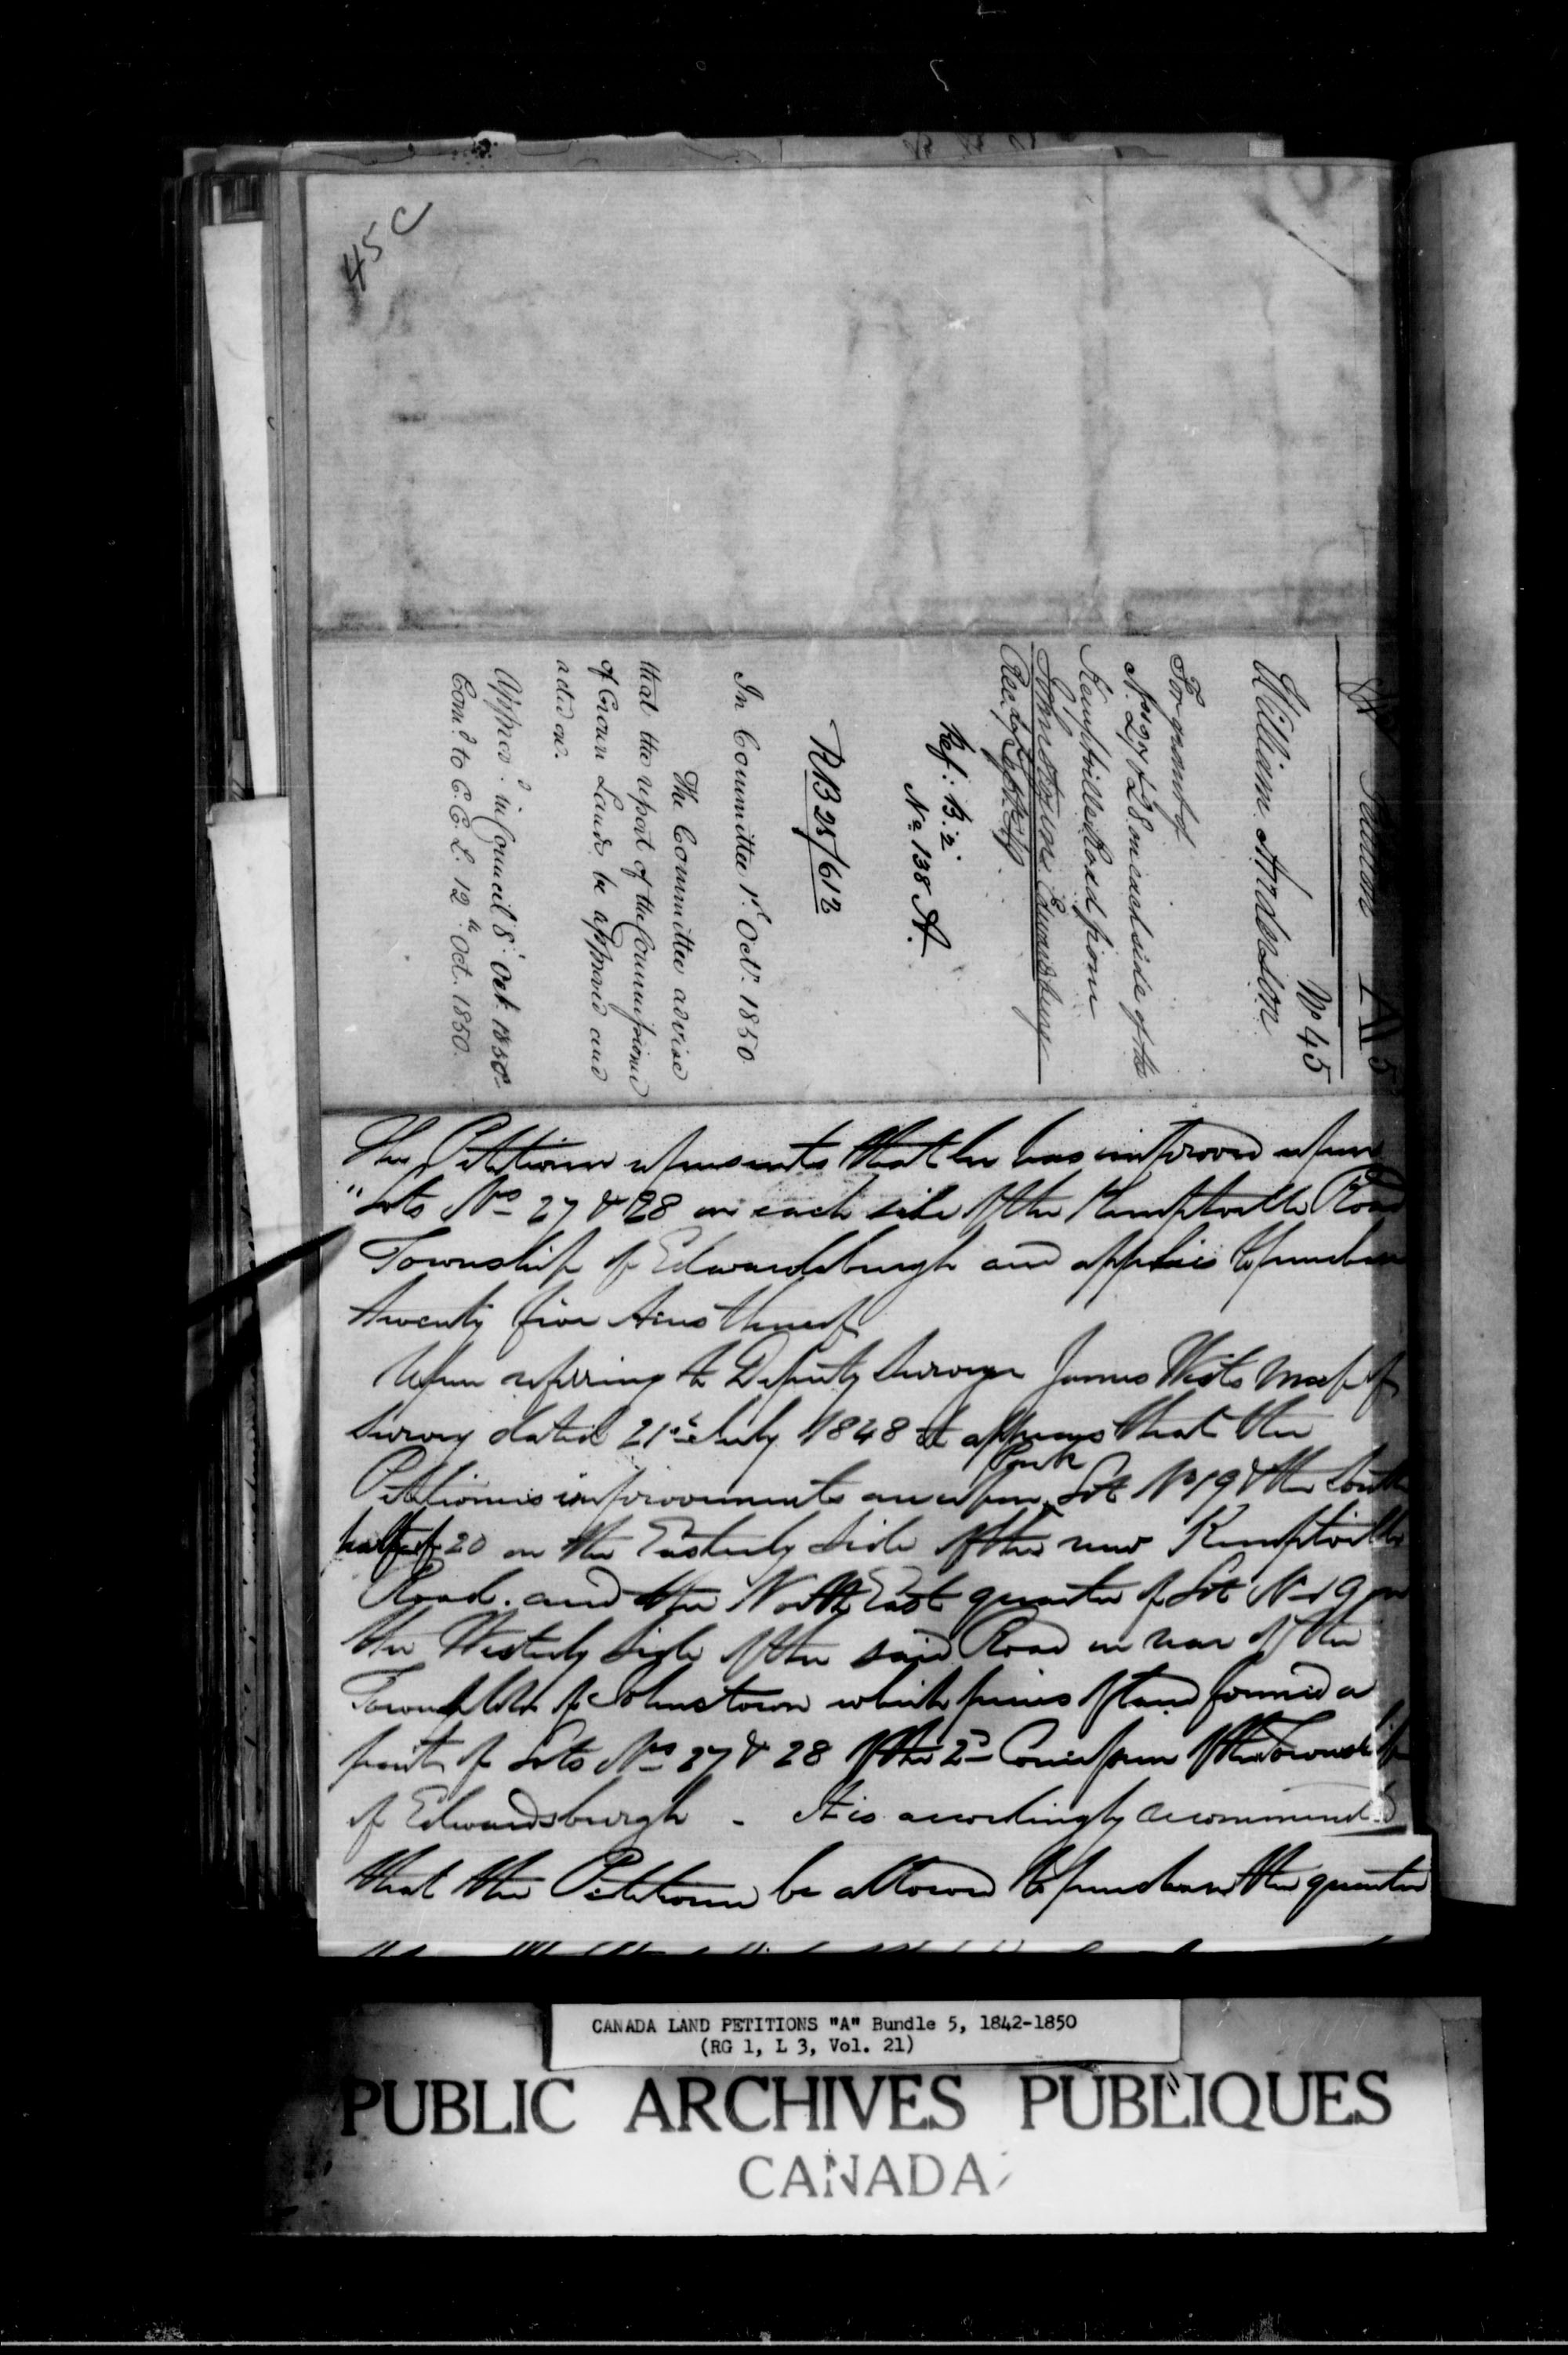 Title: Upper Canada Land Petitions (1763-1865) - Mikan Number: 205131 - Microform: c-1616